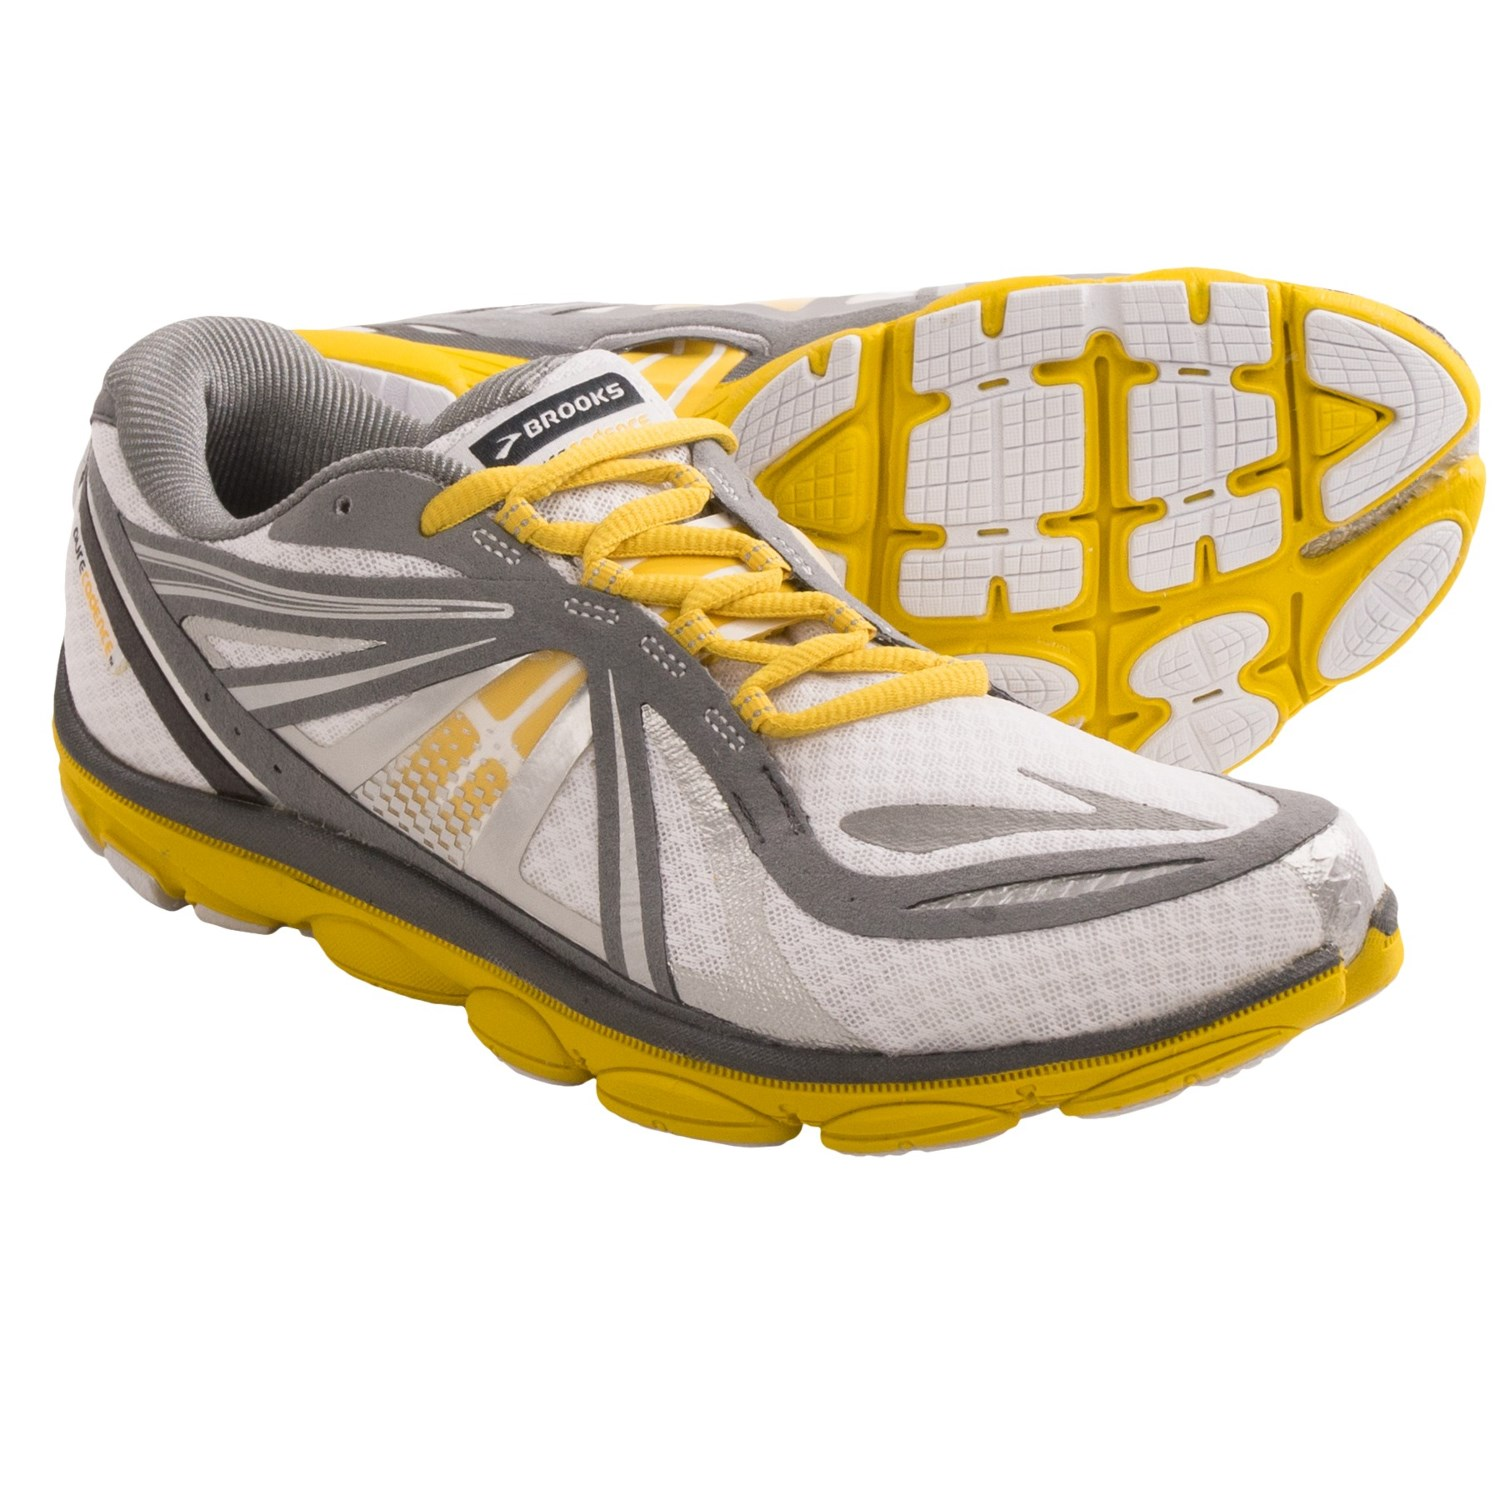 purecadence 3 minimalist running shoes for